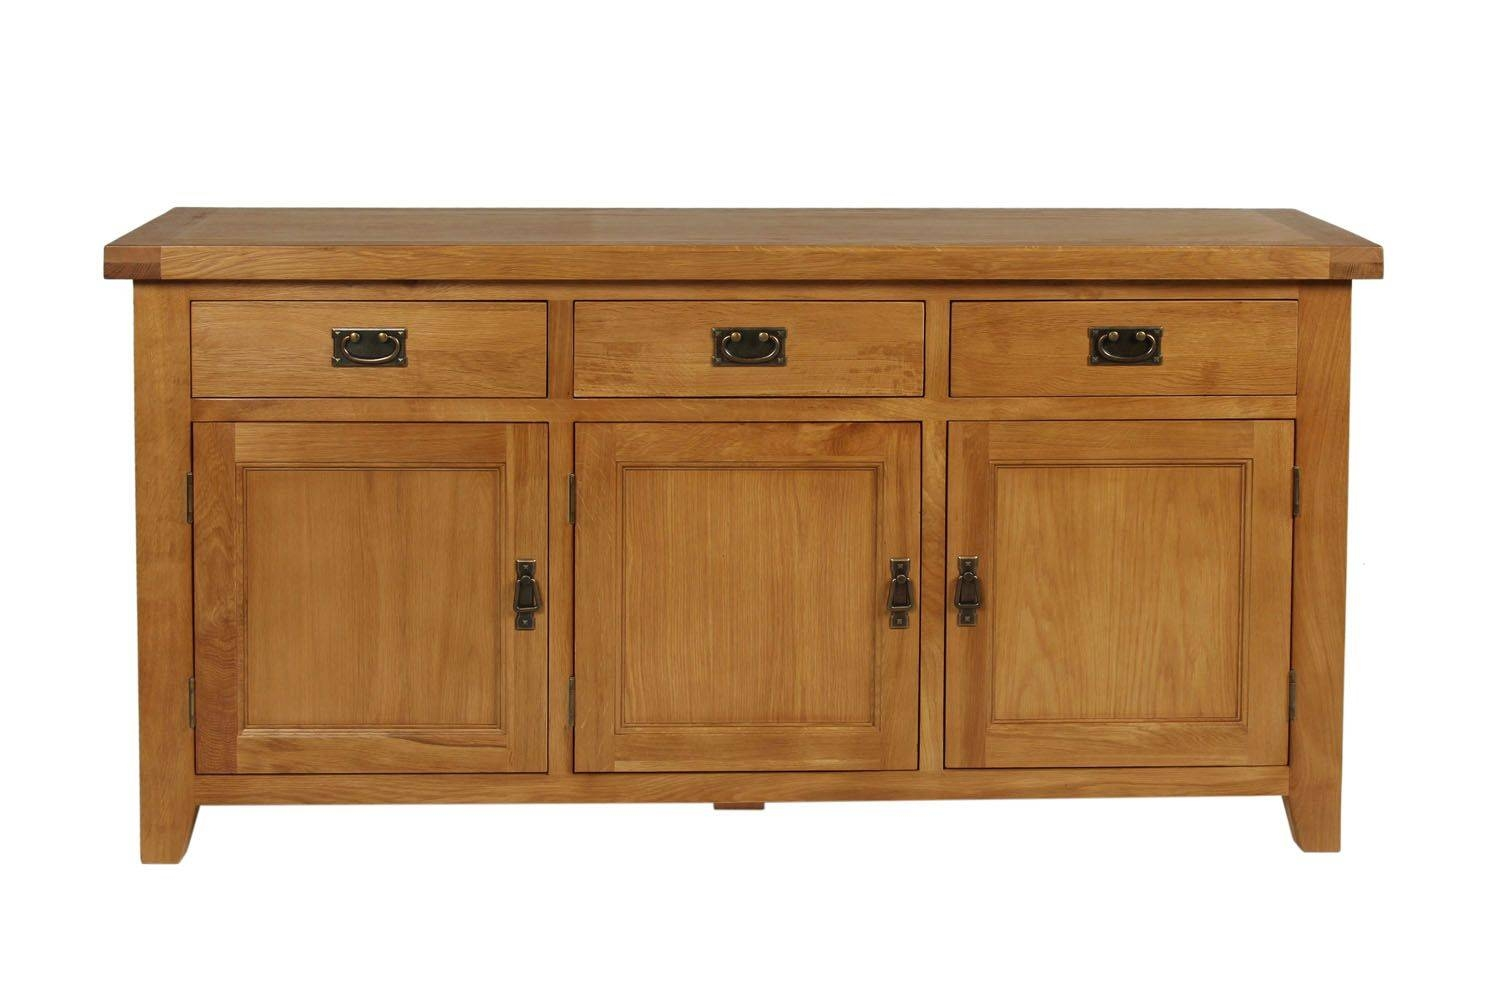 Farmhouse Country Oak 160cm Large Rustic Oak Sideboard Throughout Current Large Oak Sideboard (View 5 of 15)